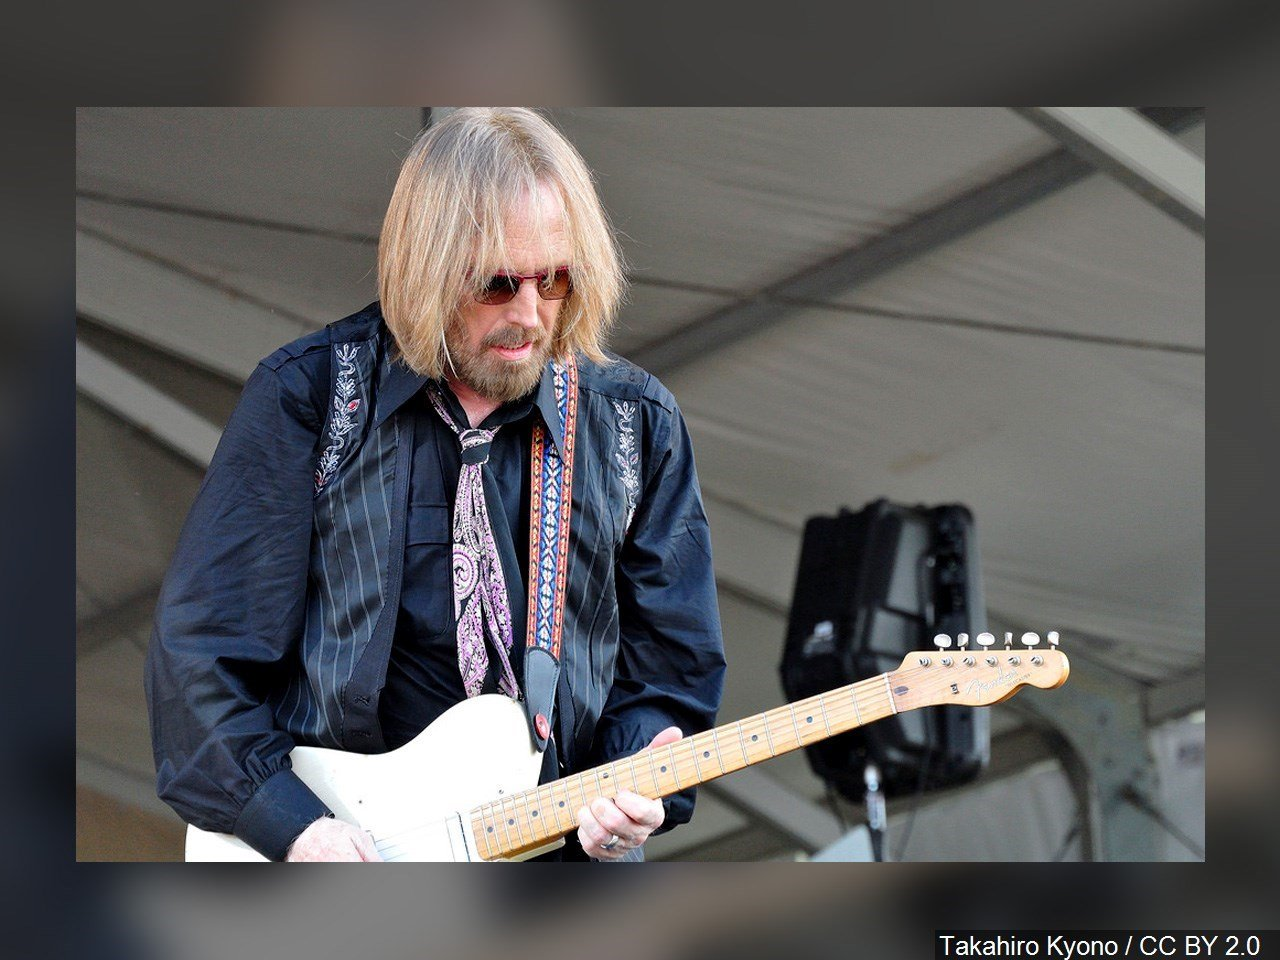 Family: Tom Petty died of accidental drug overdose